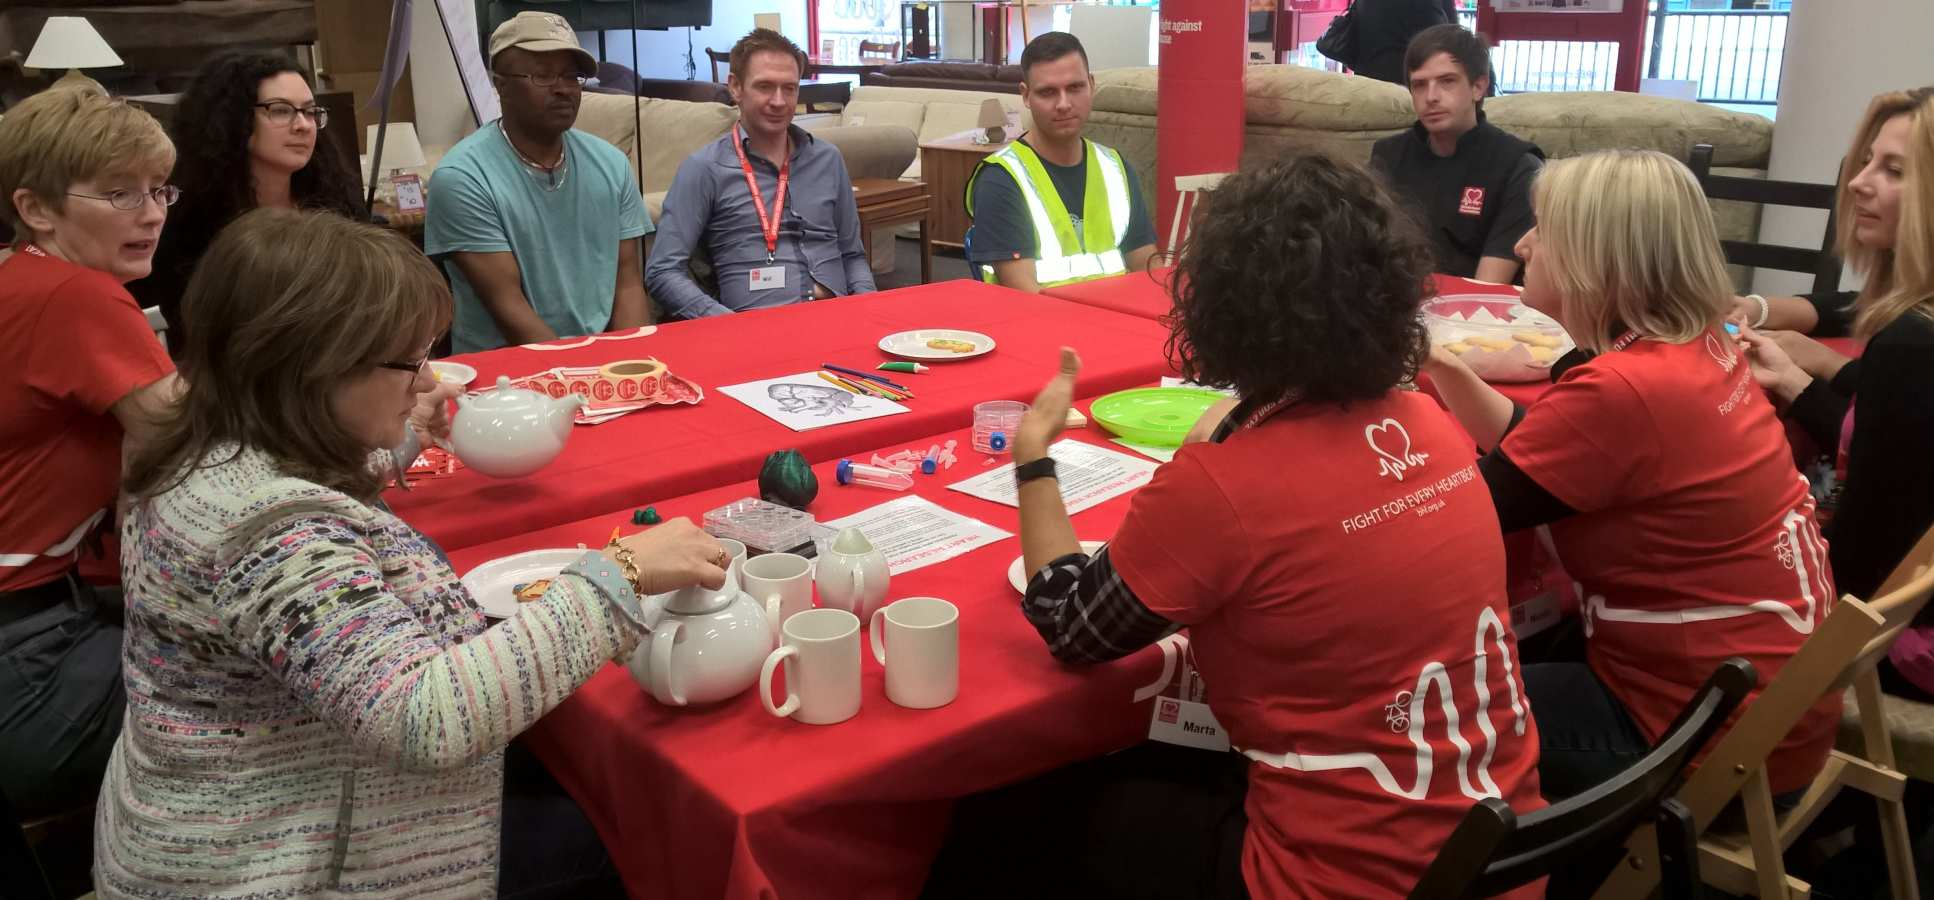 researchers & public sit round table in BHF shop